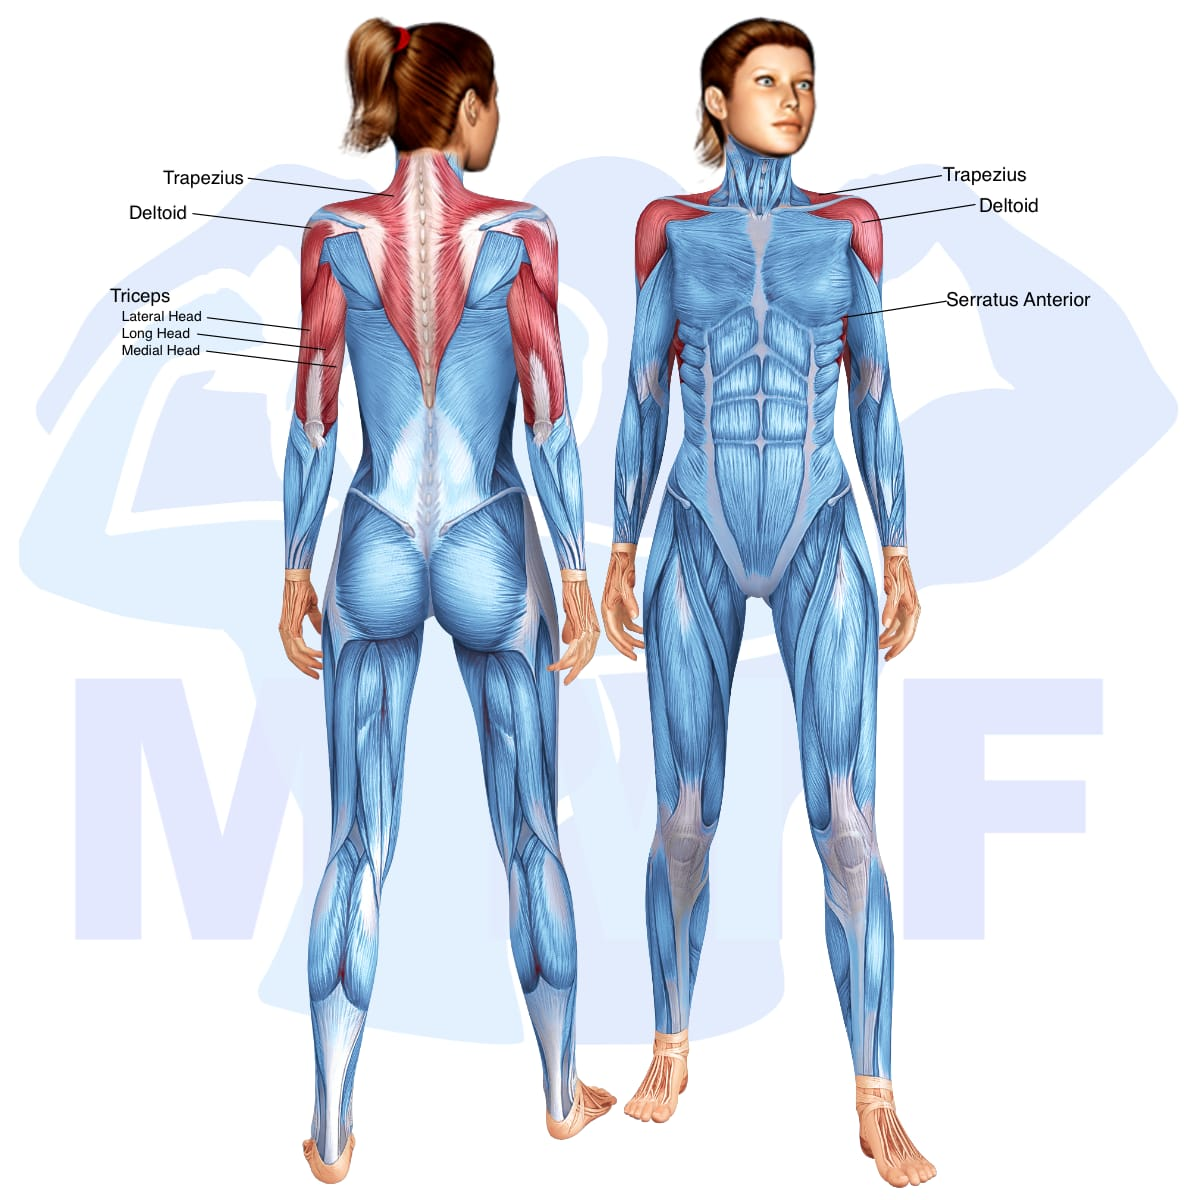 Skeletal muscle systems for a muscular woman, with muscles highlighted in red that are use during resistance band shoulder press.